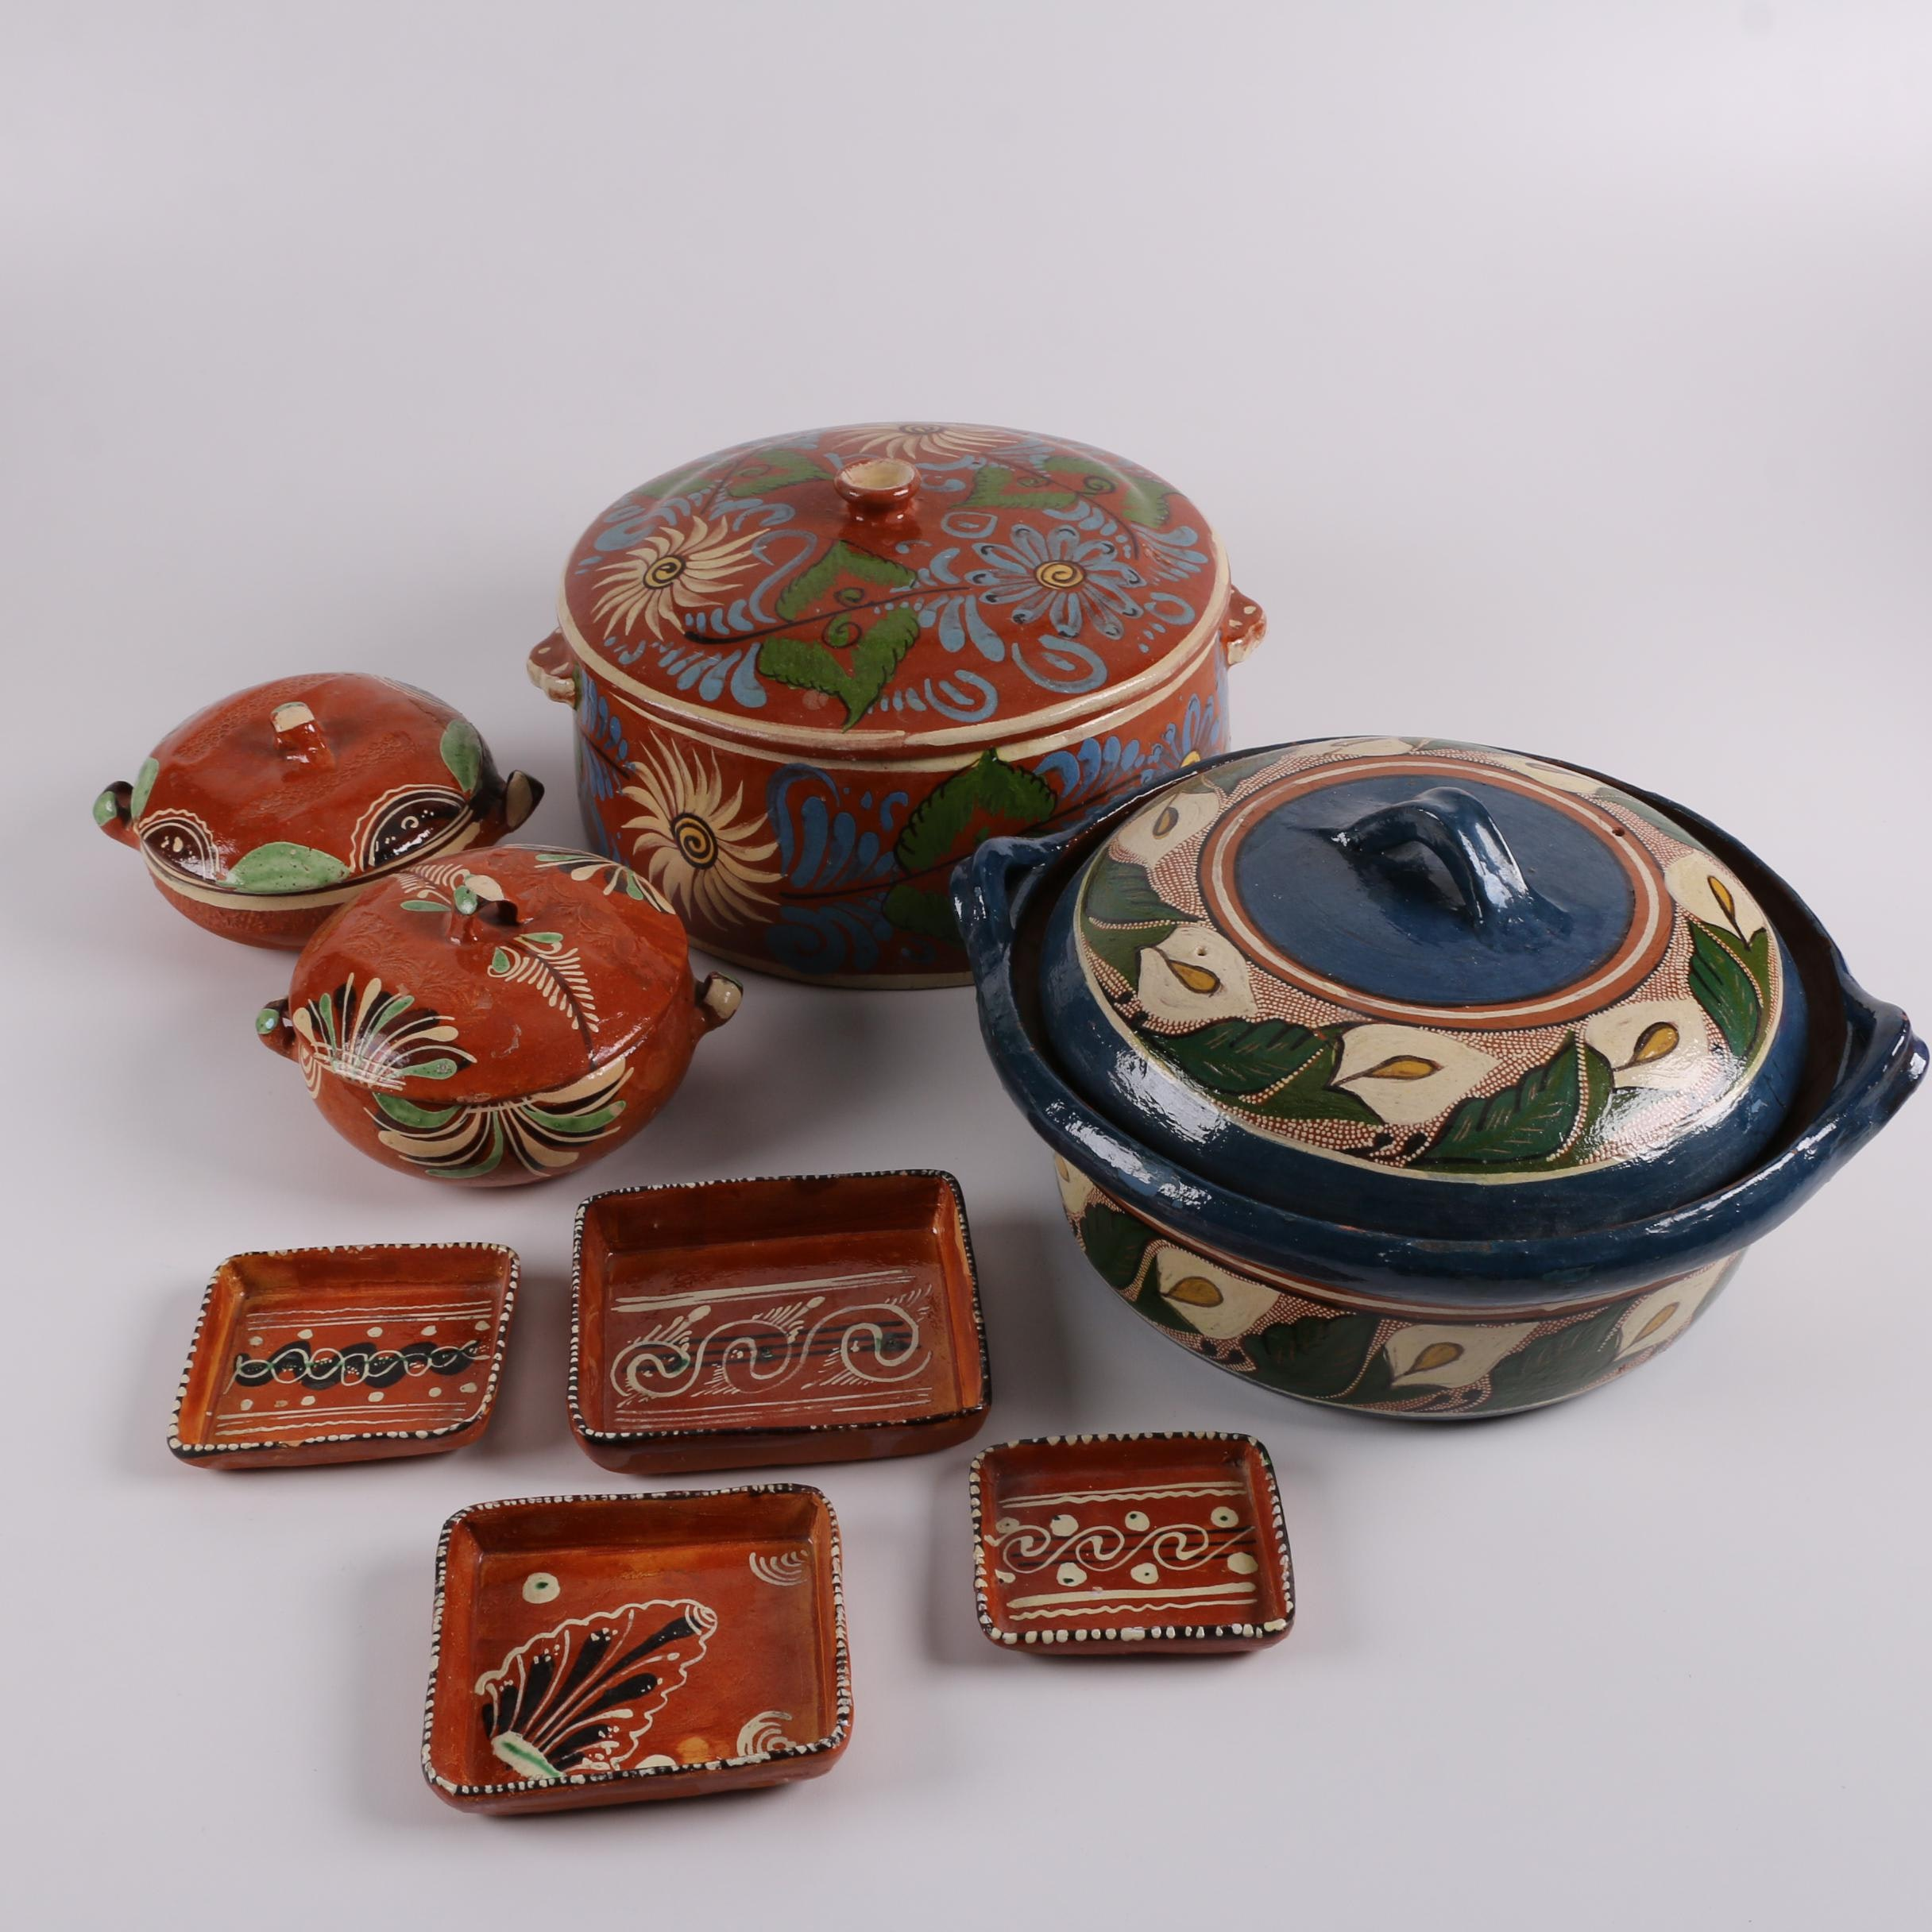 Vintage Mexican Redware Bakeware and Serveware